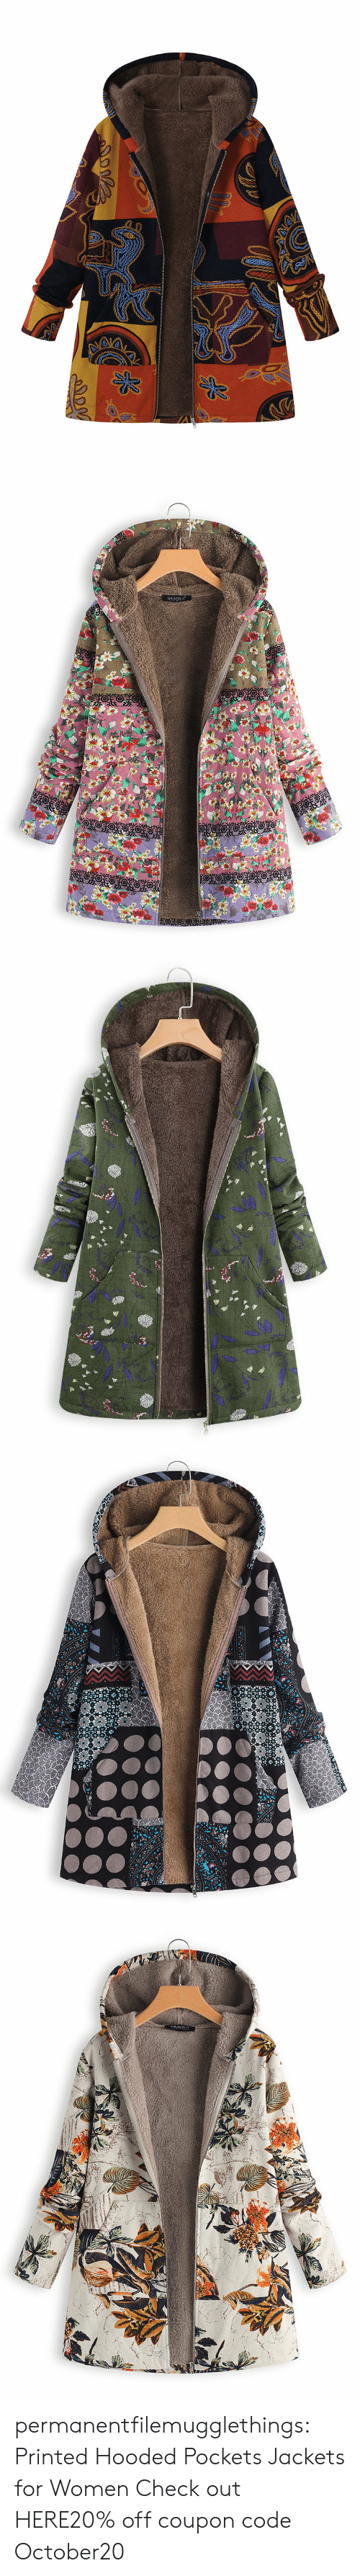 Tumblr, Blog, and Women: Opoo   GRACILA   w  וadll  -ו3 y permanentfilemugglethings:  Printed Hooded Pockets Jackets for Women Check out HERE20% off coupon code:October20